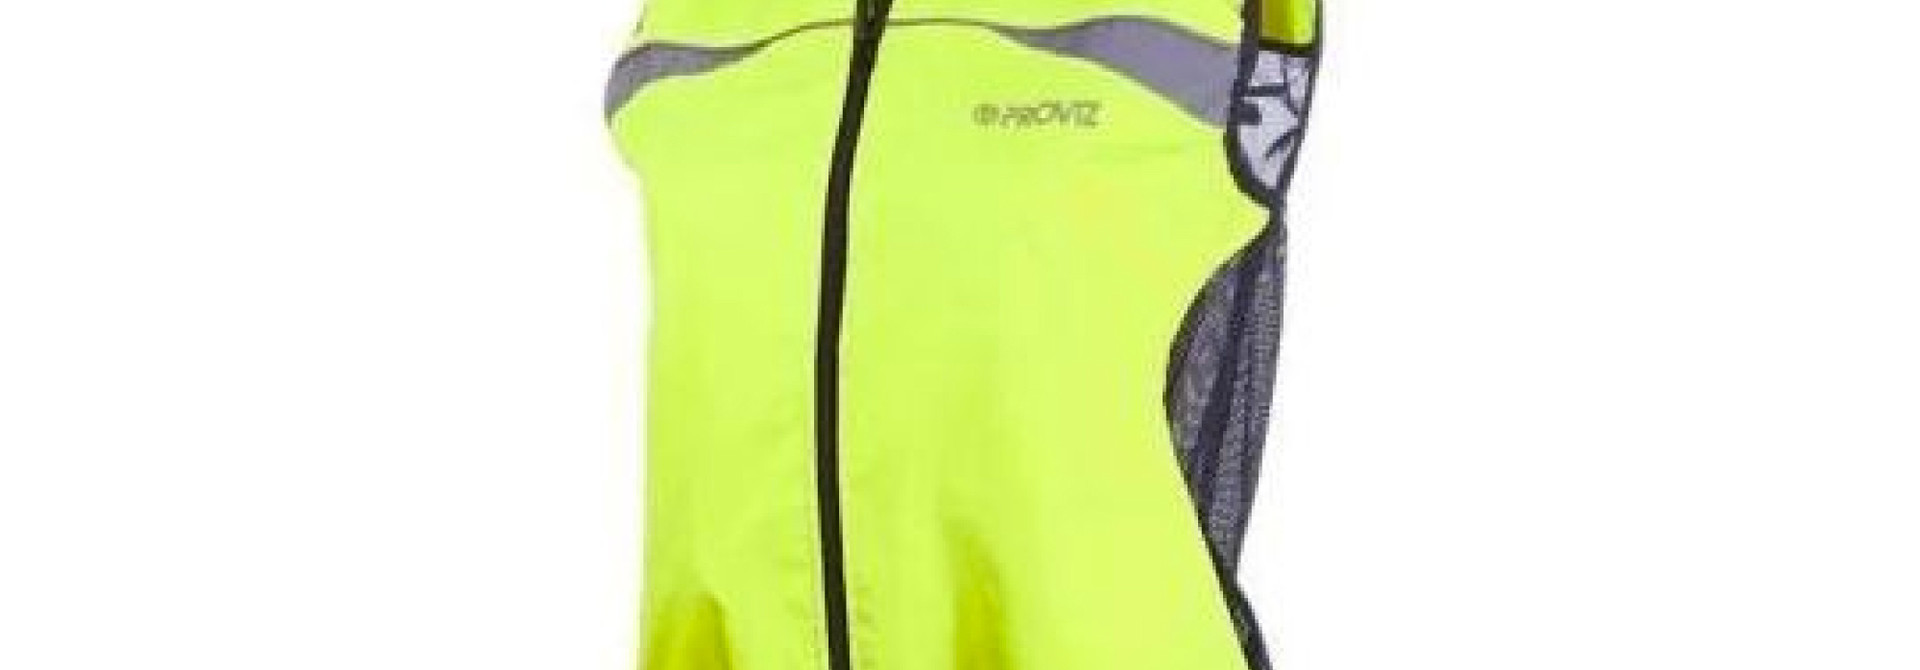 Gilet- Proviz High Visibility Yellow Wind Vest Womens Fit Size 12 Pv251